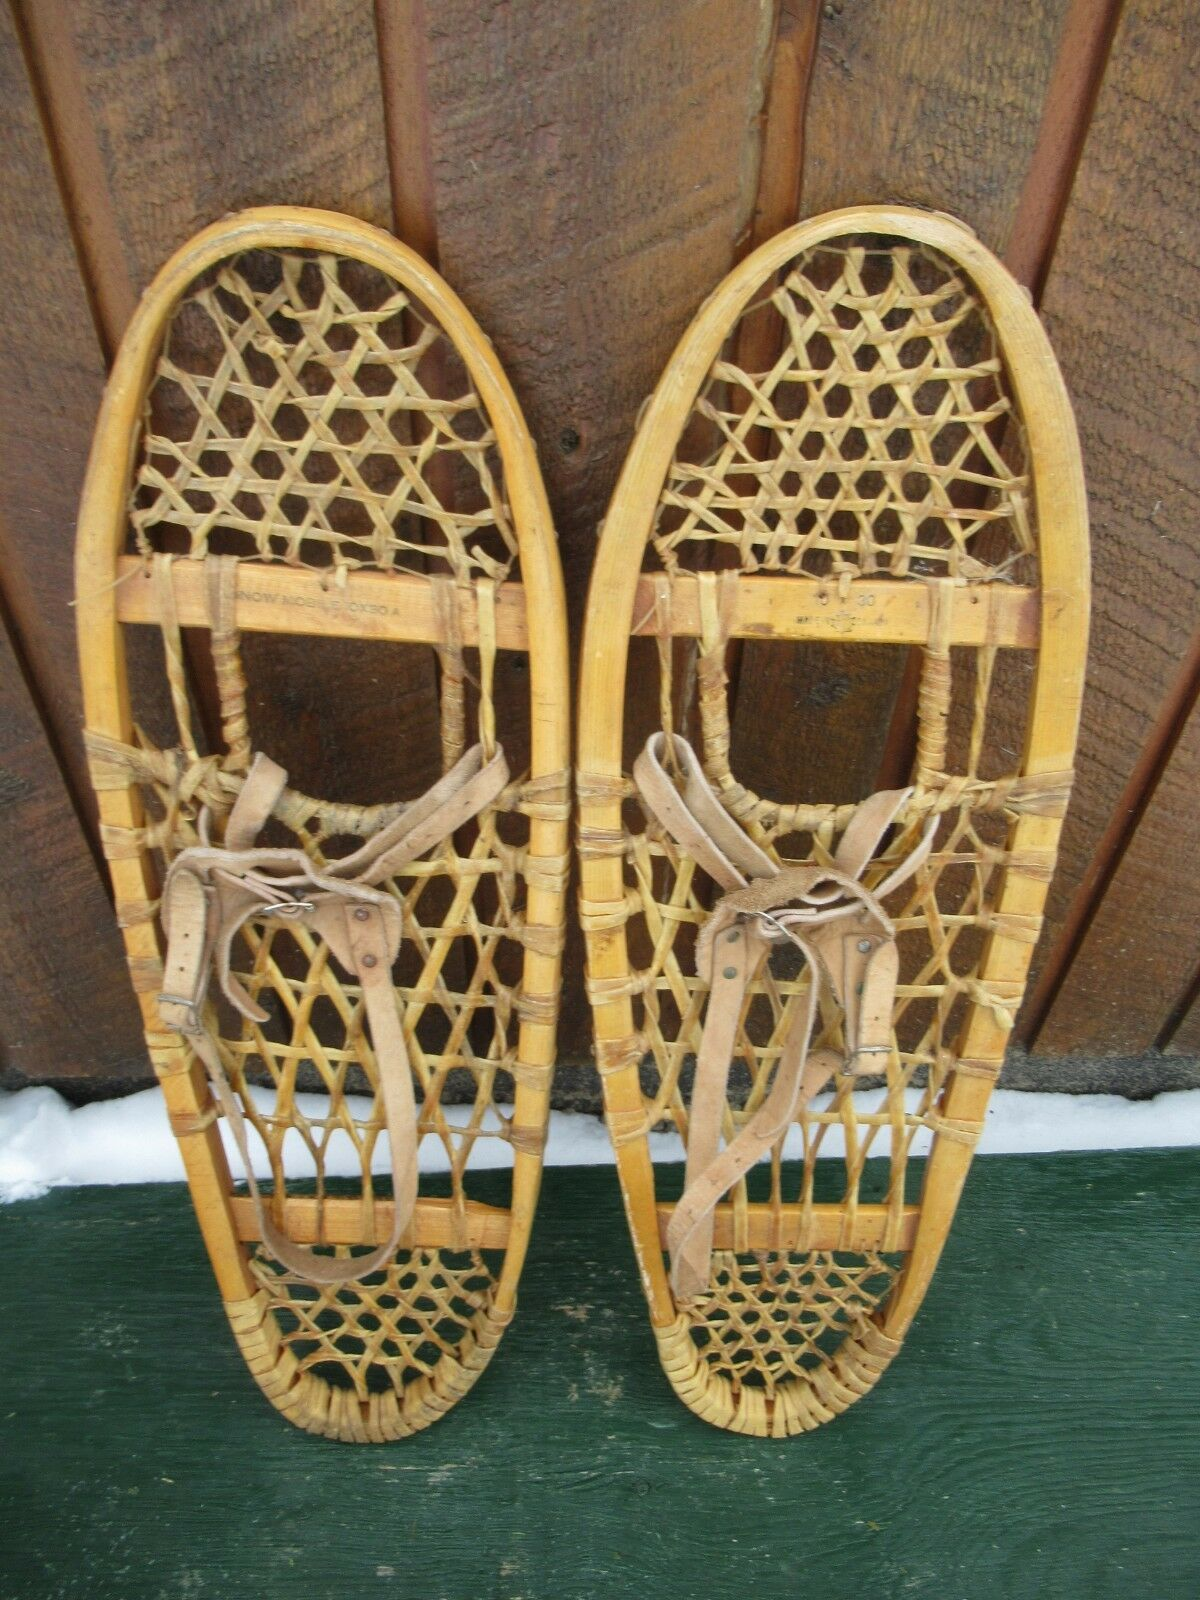 GREAT Snowshoes 30  Long x 10  Wide with Leather Binding Ready to Use